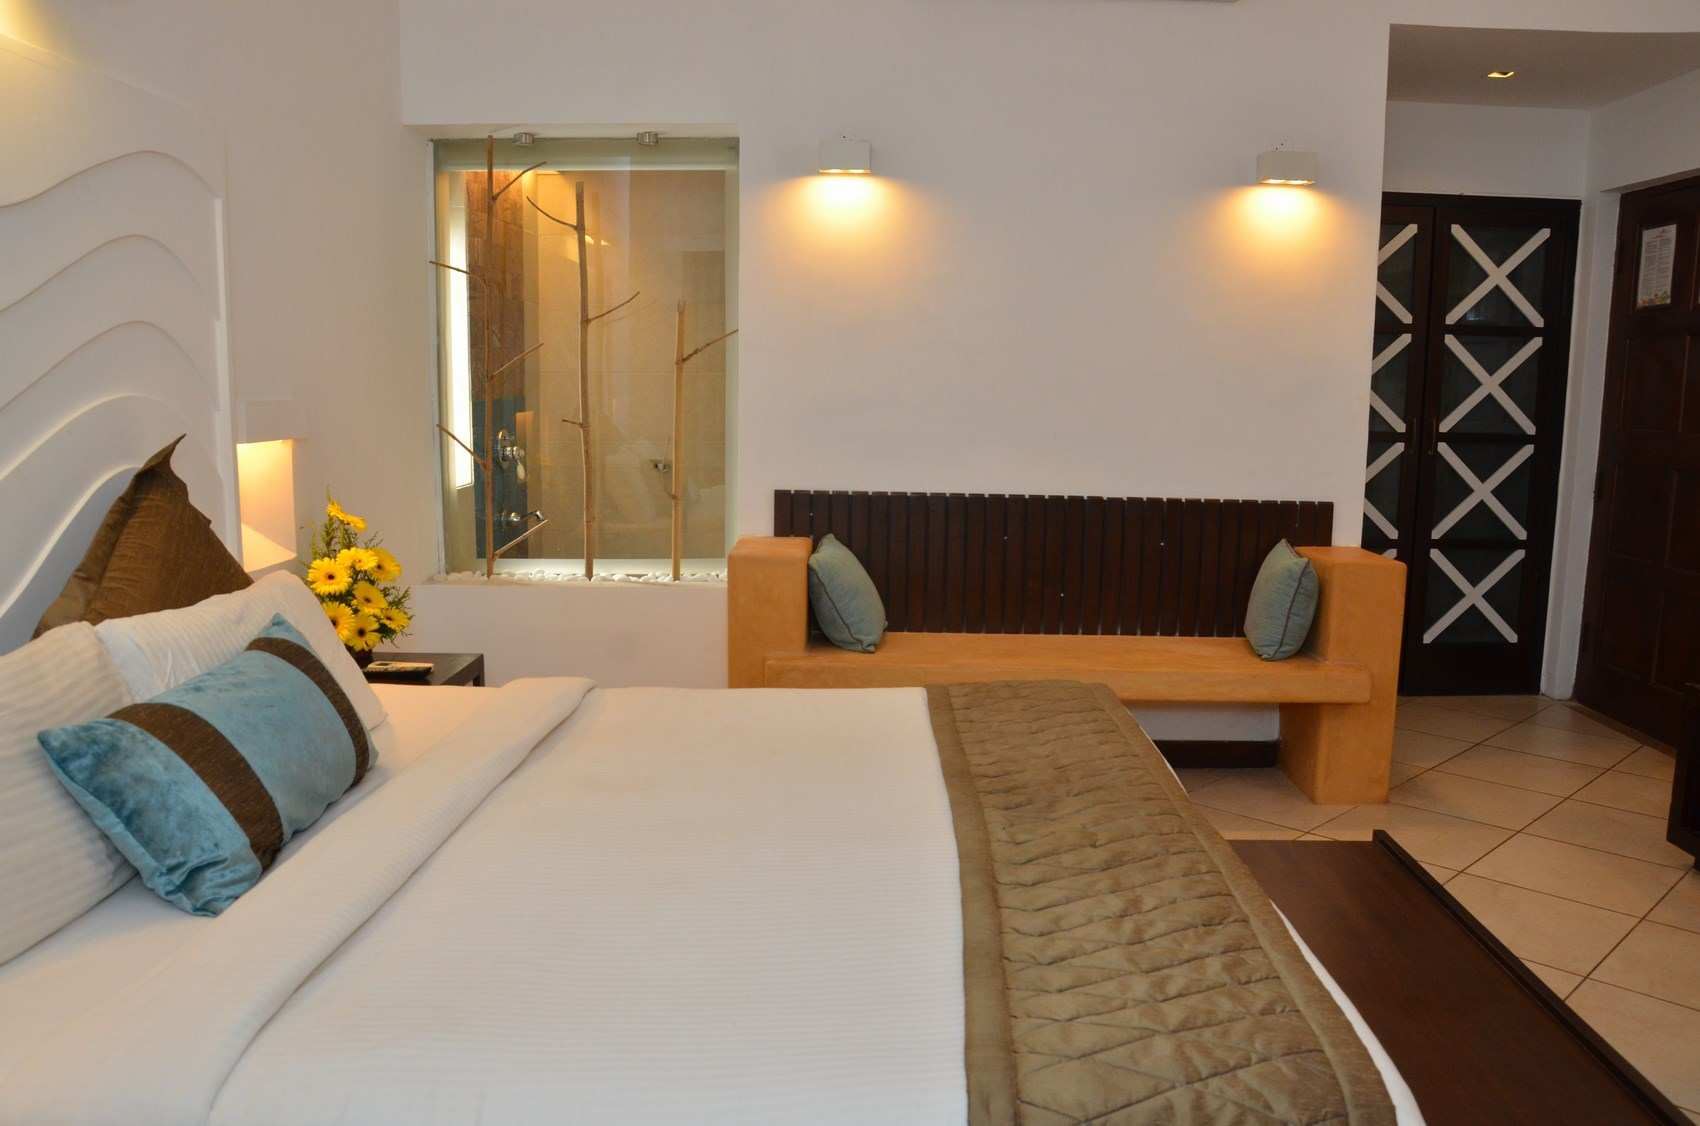 superior suite room goa | Affordable hotel in Goa, Affordable hotel room in Goa.